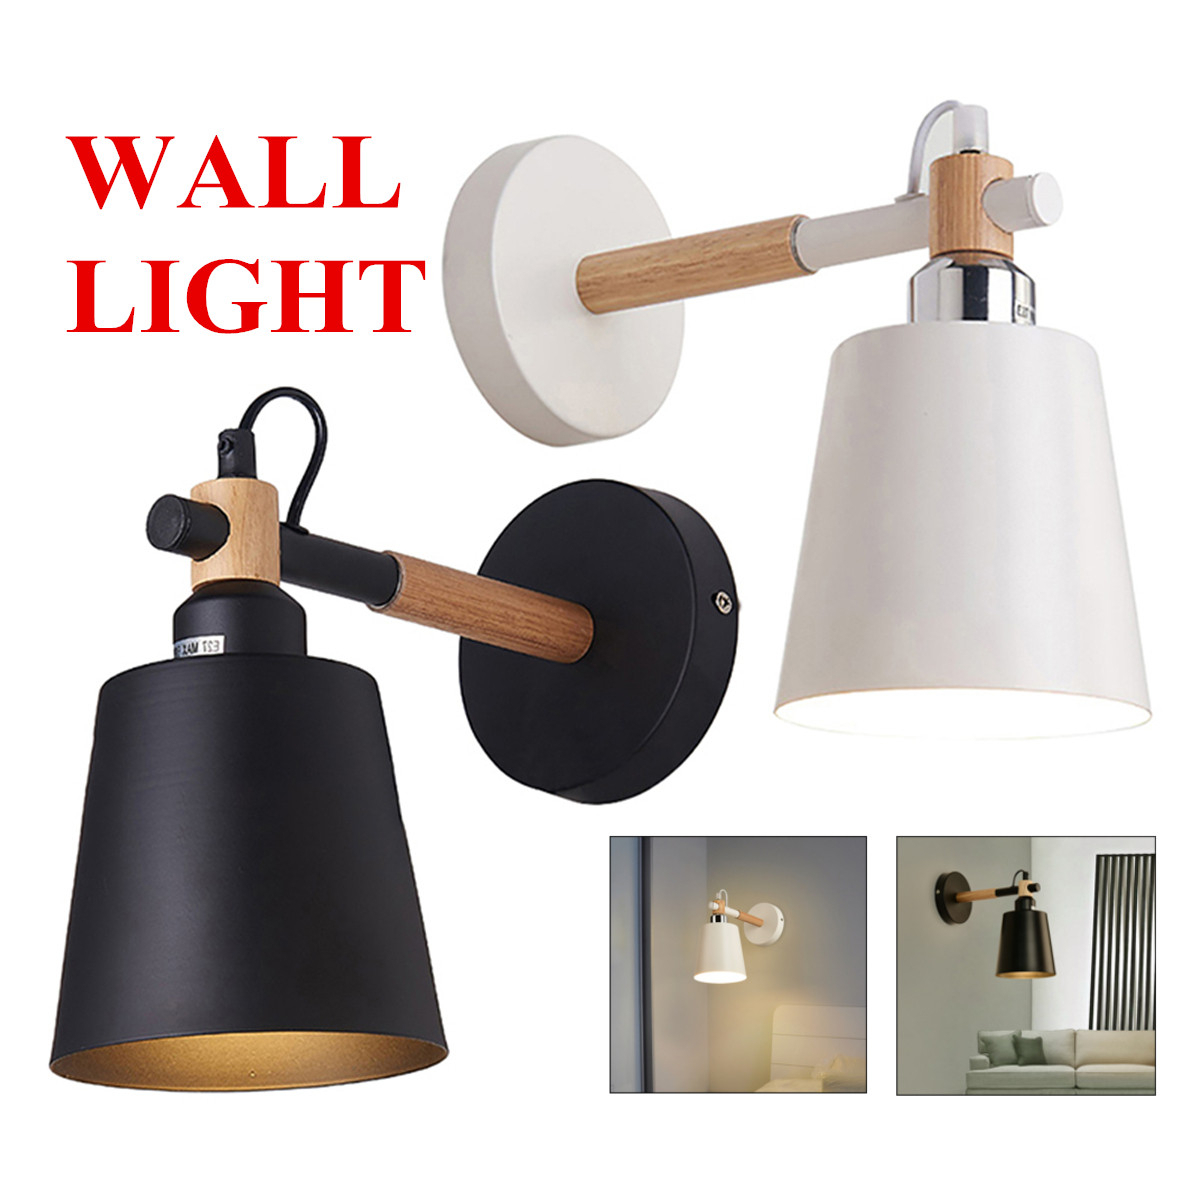 Details About Industrial Wall Light Sconce Lamp Swing Fixture Bedroom Hotel Bedside Retro In Lamp Outdoor Porch Swings (View 12 of 25)